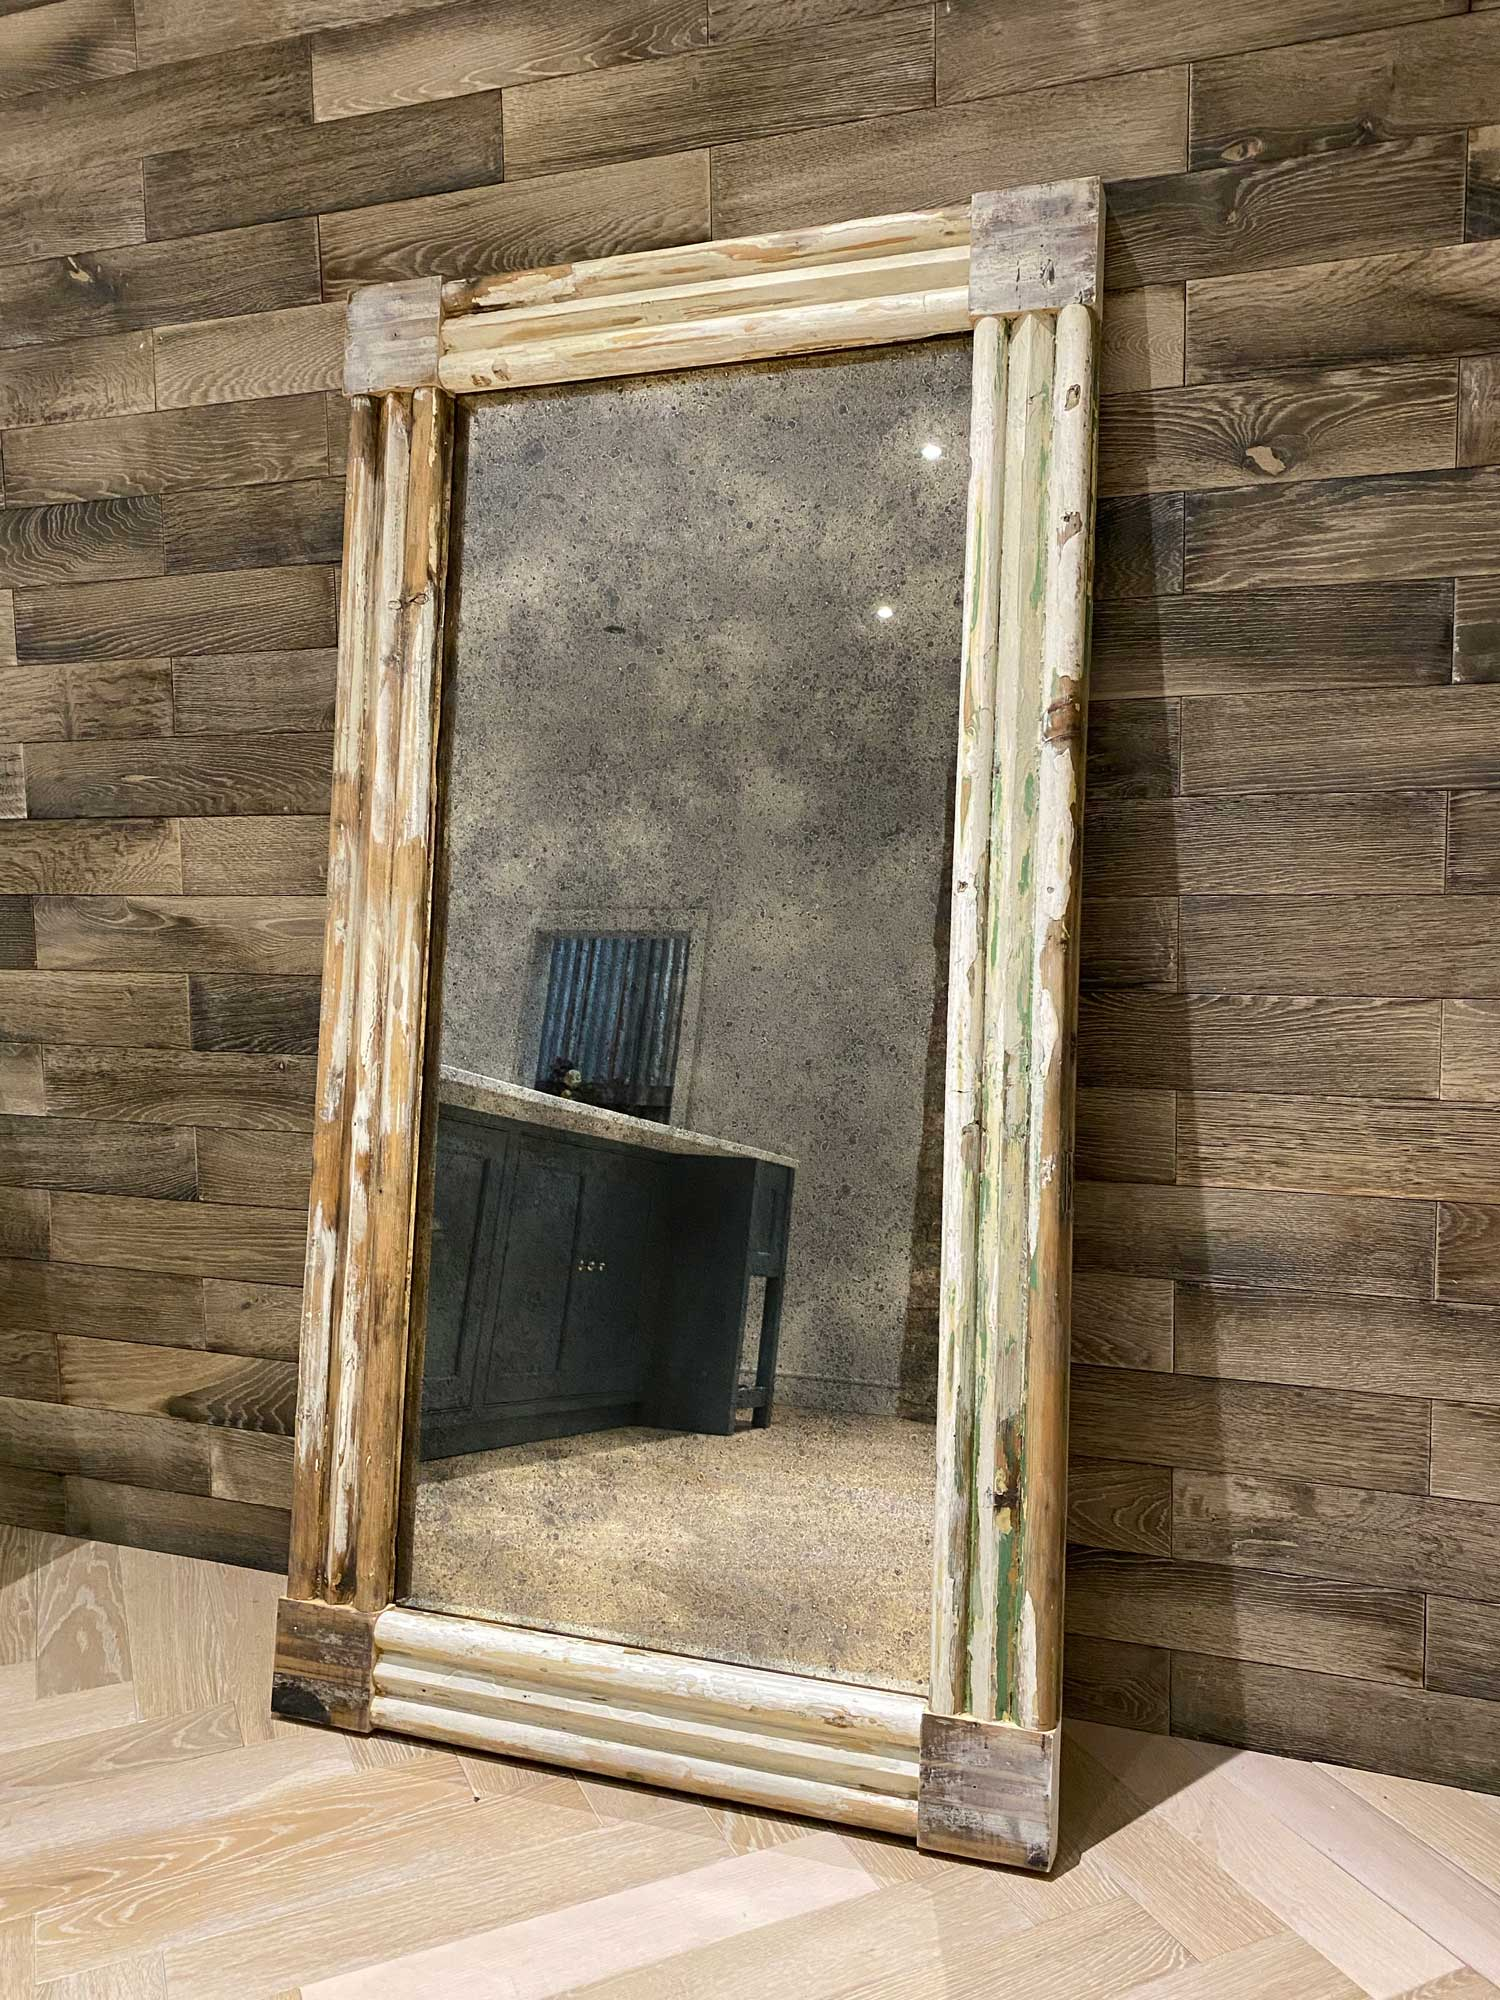 Large Antique mirror with reclaimed frame against parquet wall